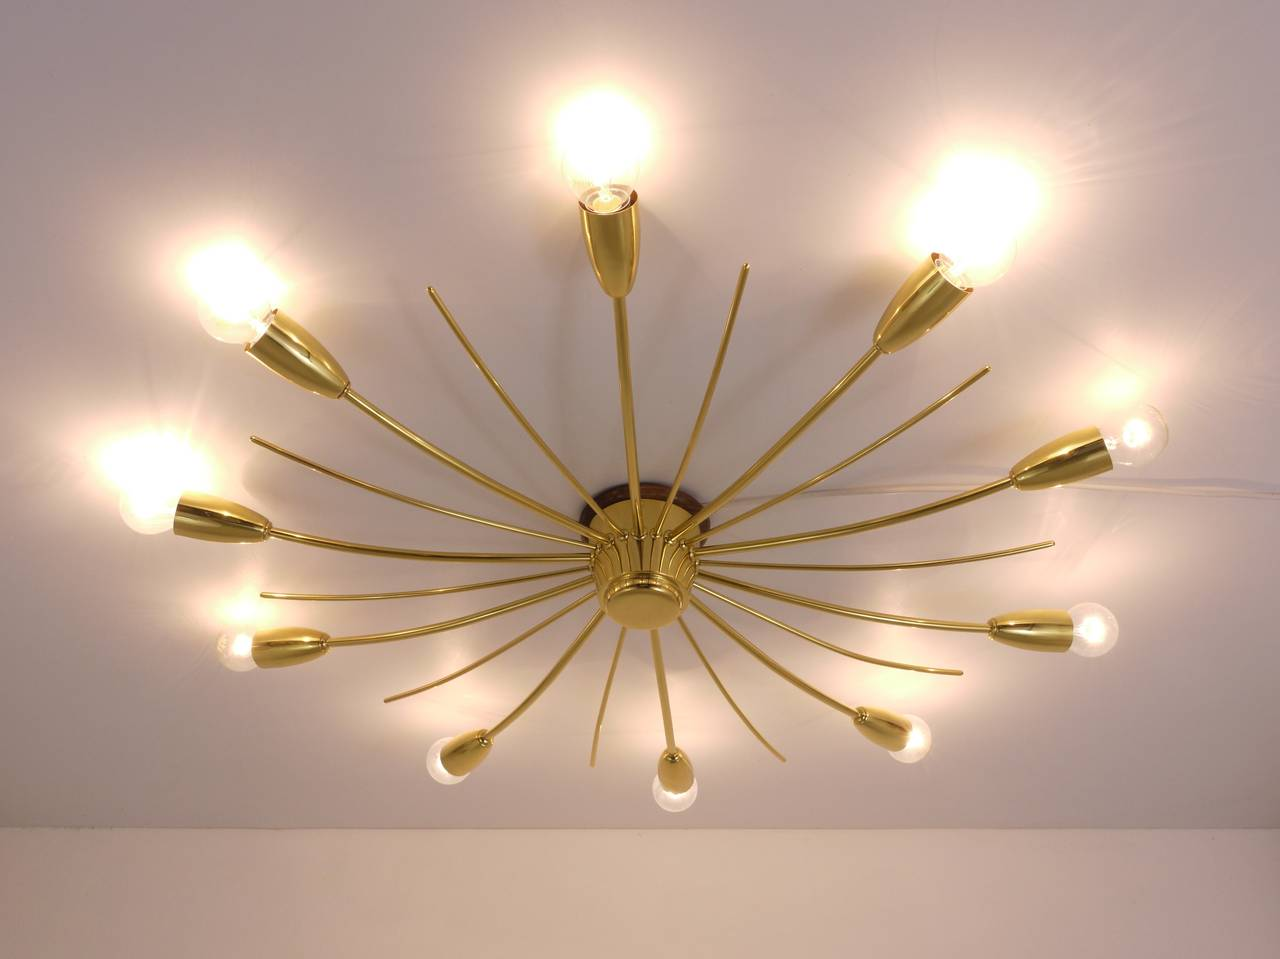 Kalmar Sonne Sun Shaped Modernist Brass Chandelier Flush Mount, Austria, 1950s For Sale 1